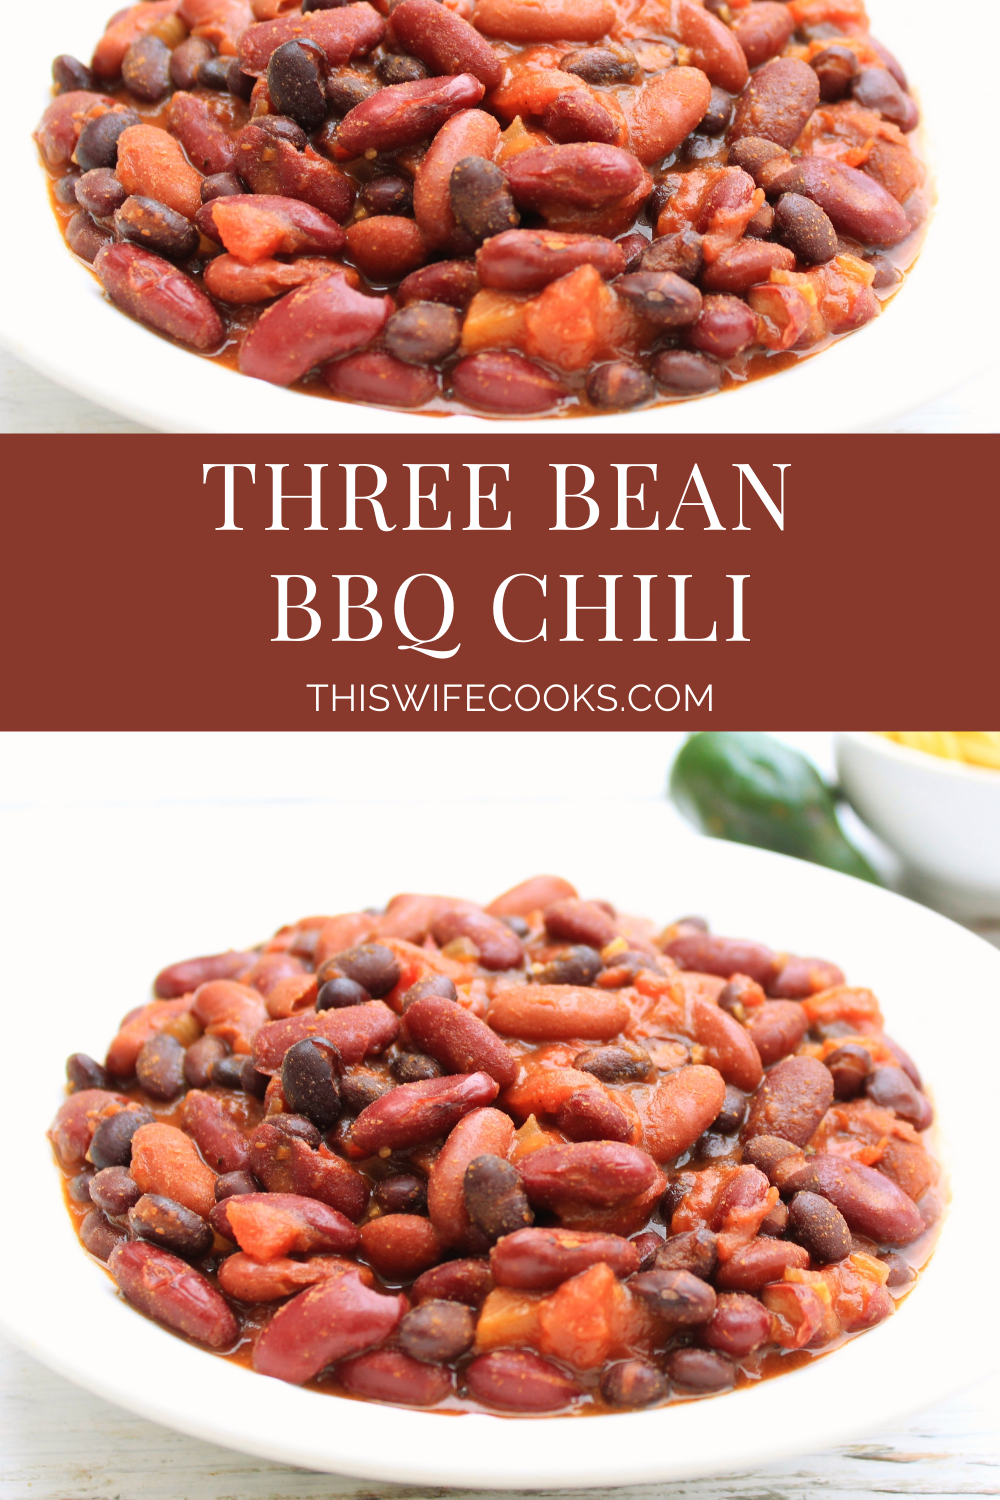 Three Bean BBQ Chili ~ This hearty and healthy chili is packed with protein and ready to serve in about an hour. via @thiswifecooks